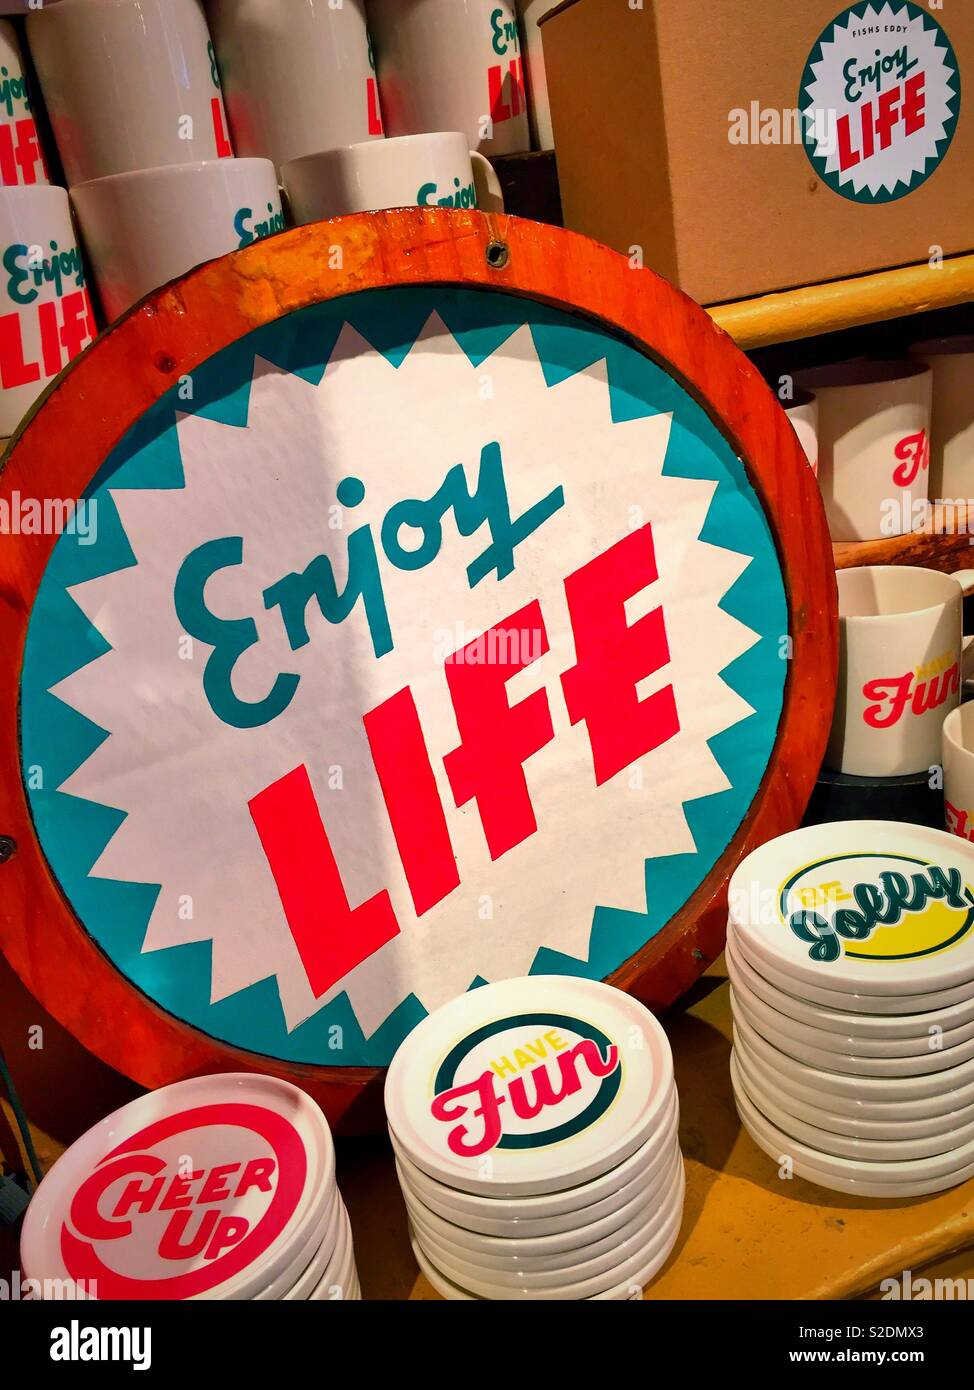 Enjoy life sign at a retail store, USA - Stock Image